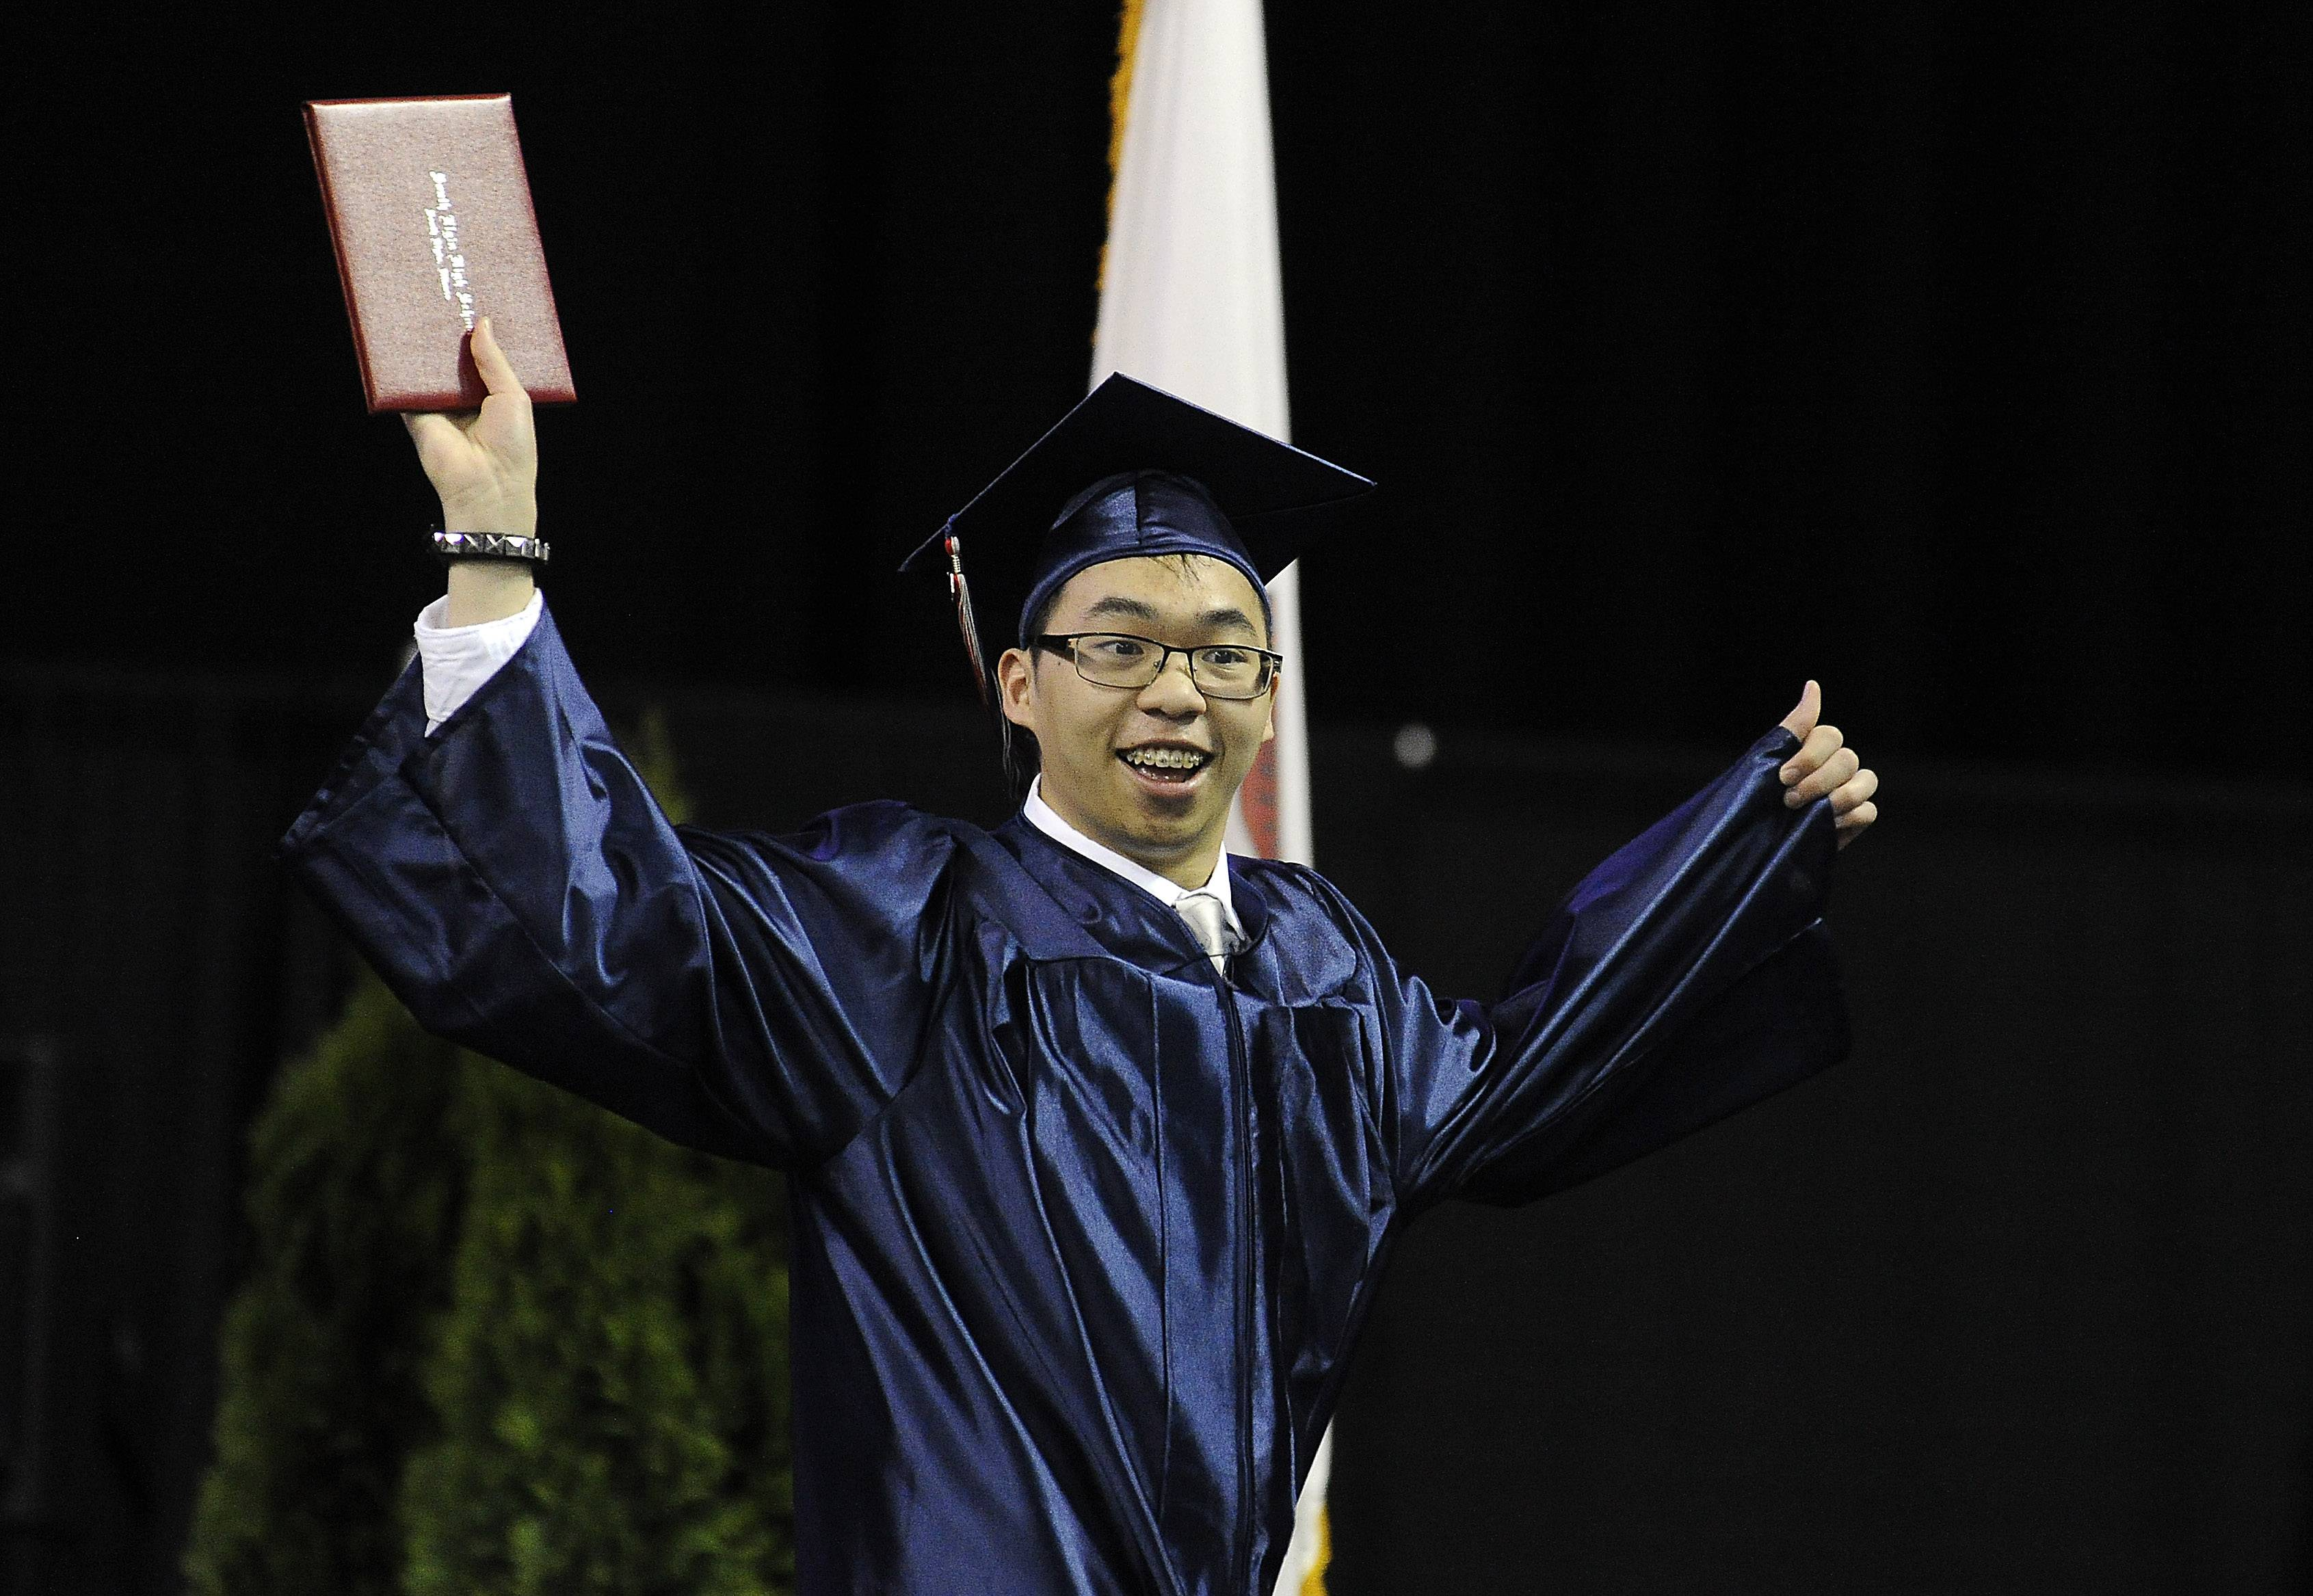 Jay Kettavong, 18, of Elgin starts to feel the excitement of being a graduate of South Elgin High School as the commencement exercises come to a close at the Sears Centre in Hoffman Estates on Saturday.